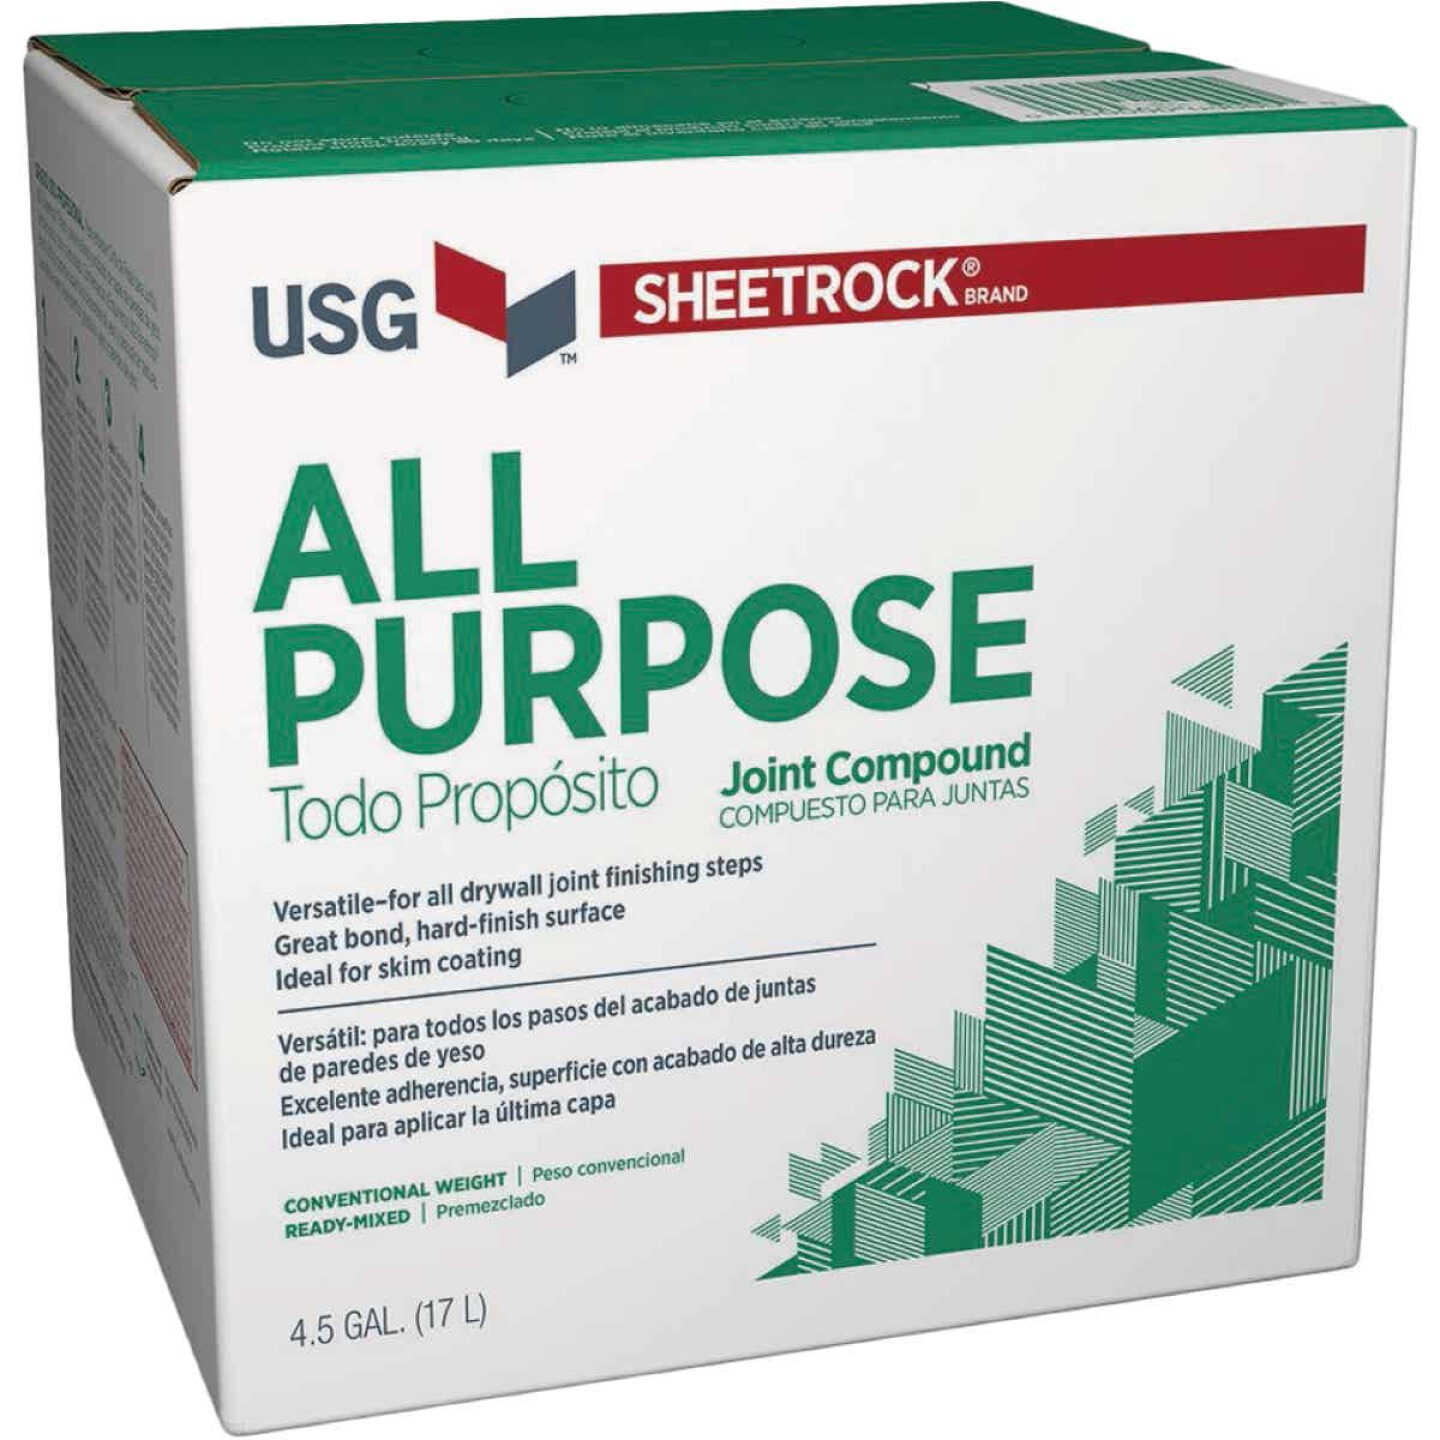 Sheetrock 4.5 Gal. Ready-Mixed All-Purpose Joint Compound Image 1